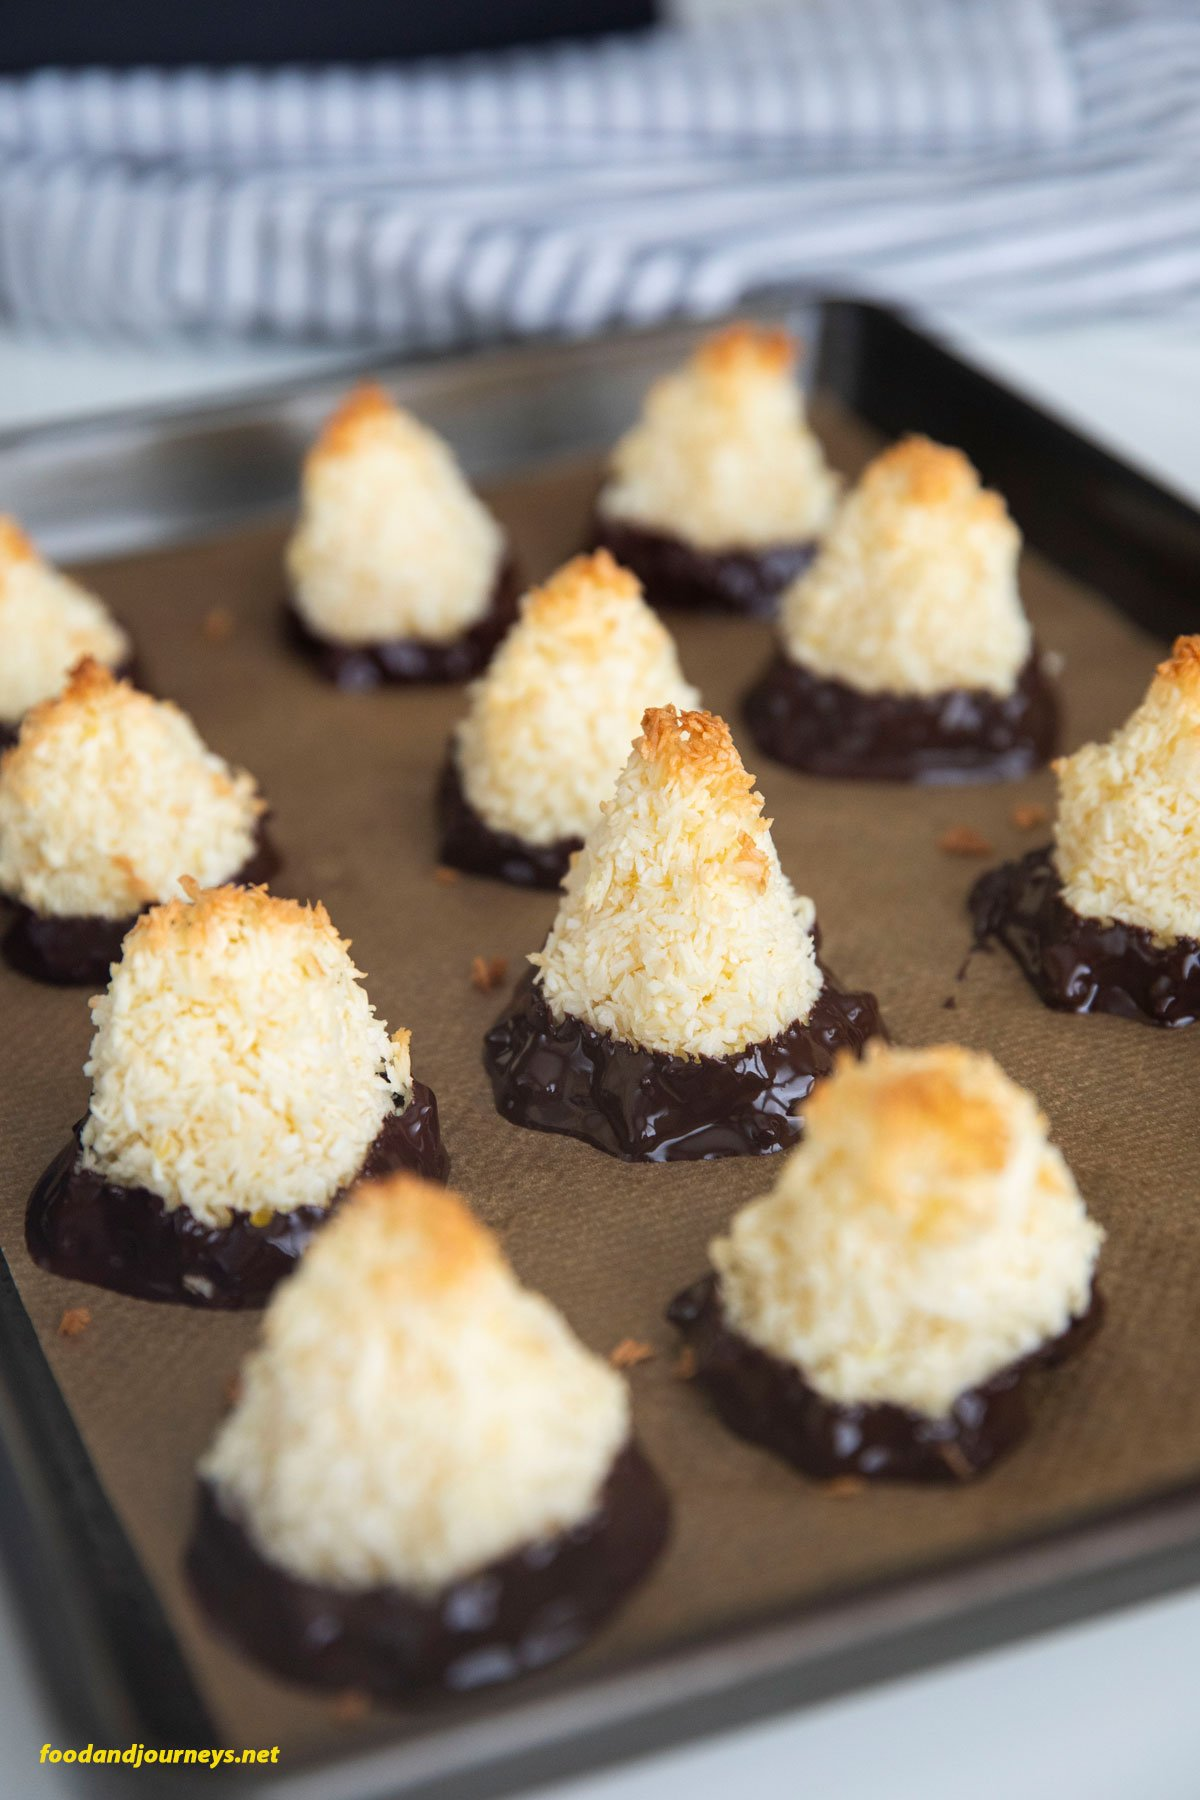 A tray of Swedish Coconut Bites, cooling off.